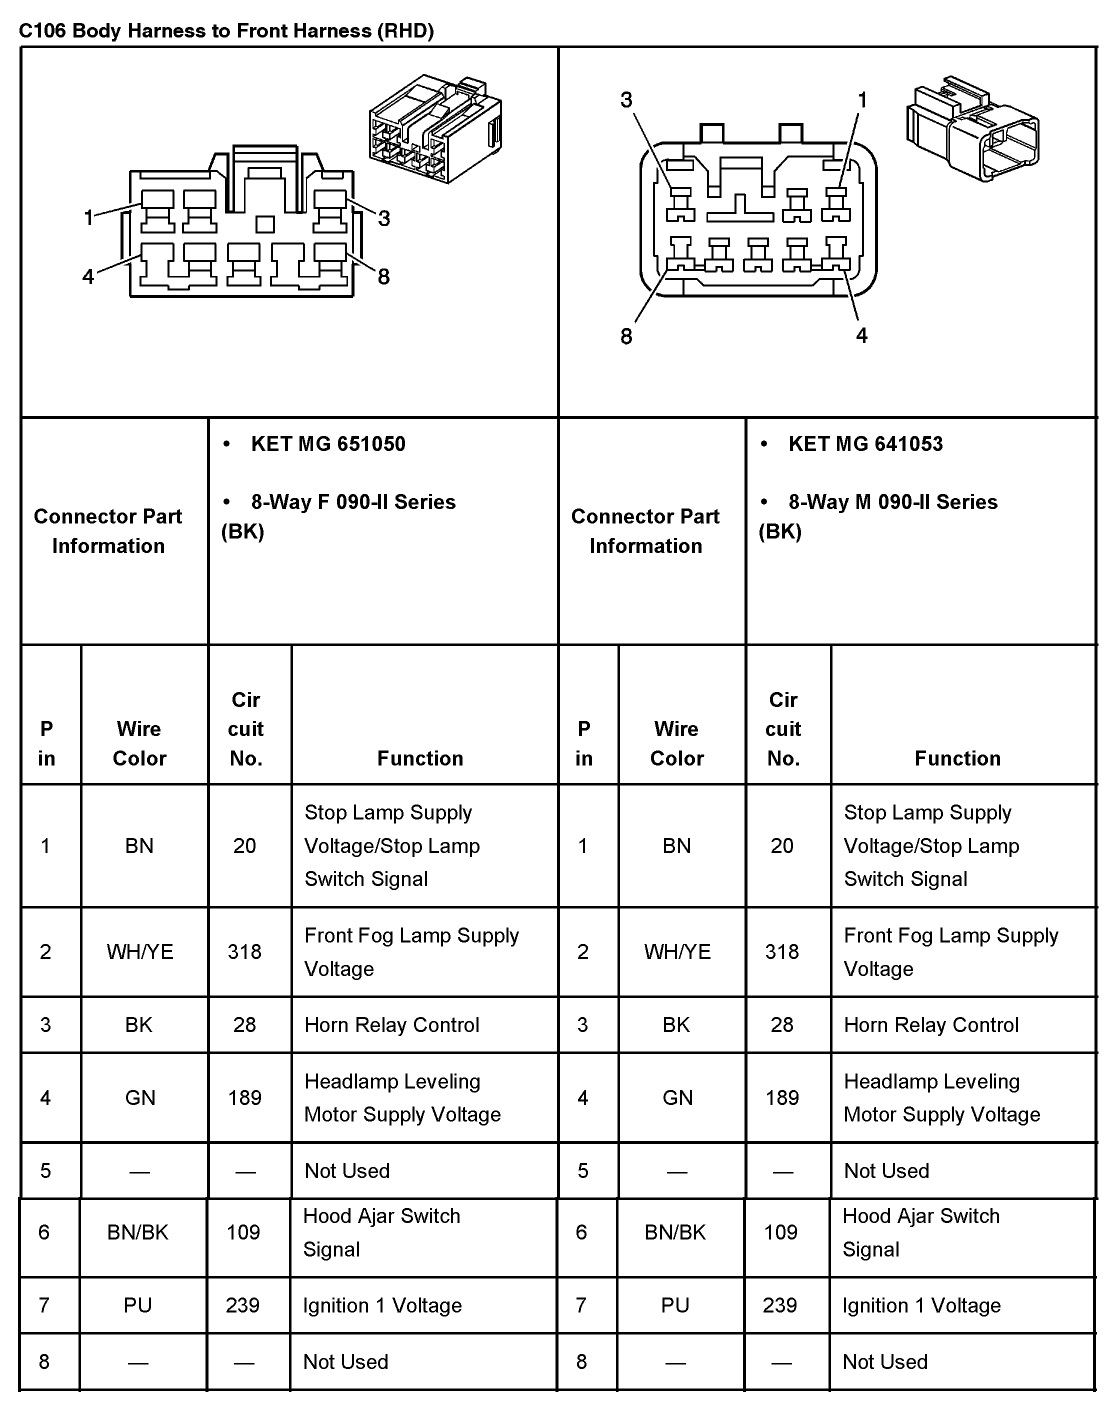 7331d1383704576 2005 aveo master connector list diagrams conn3 jpg 2008 chevy aveo fuse box diagram chevy aveo door lock diagram 2013 chevy cruze fuse box diagram at mifinder.co